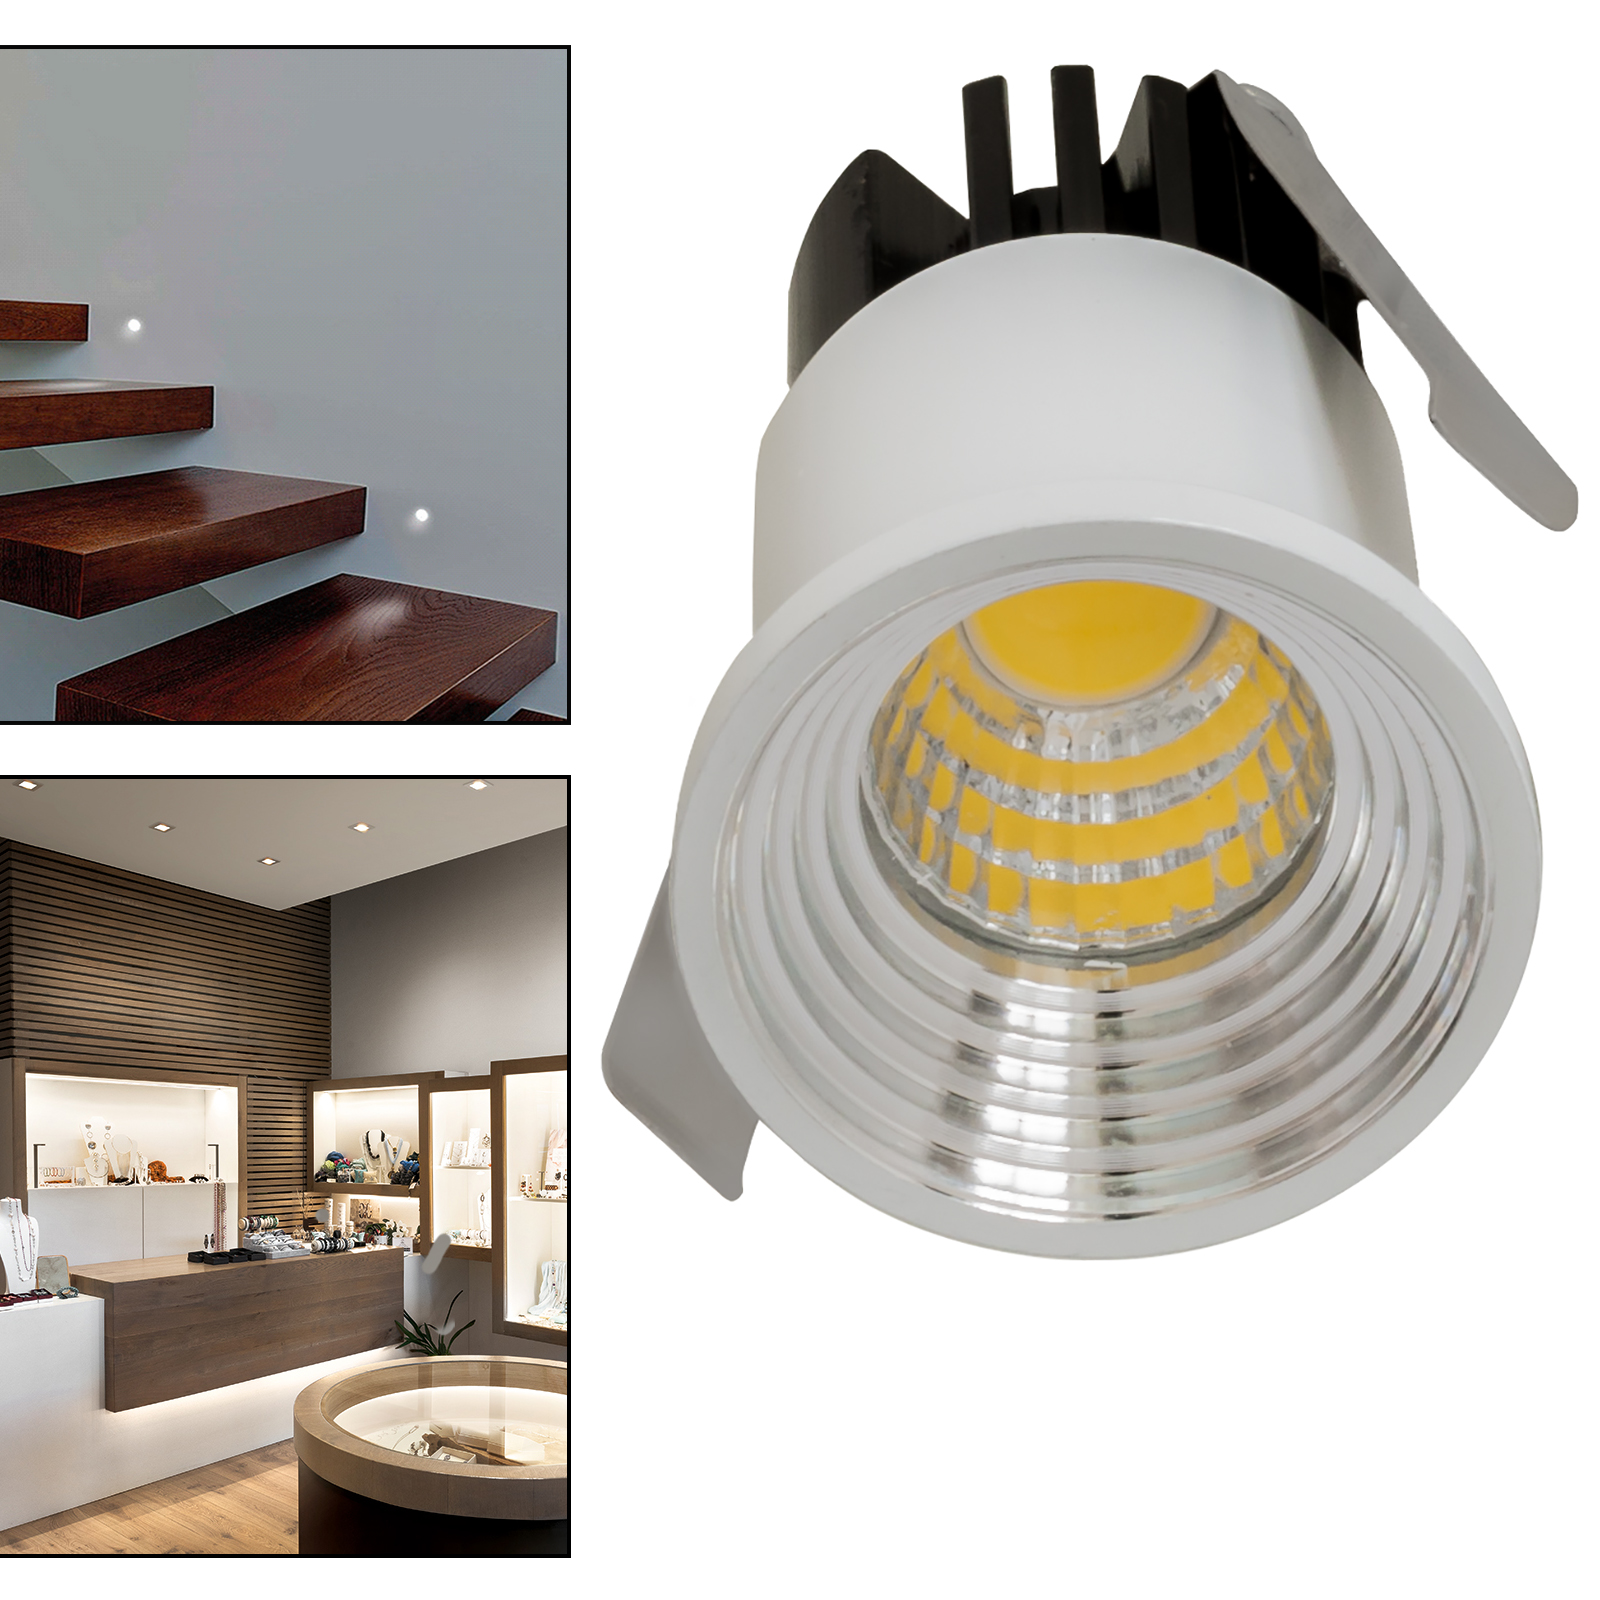 The light point collection 3cm 3W LED segnapassi mini-spotlight steps stairs showcases 230V